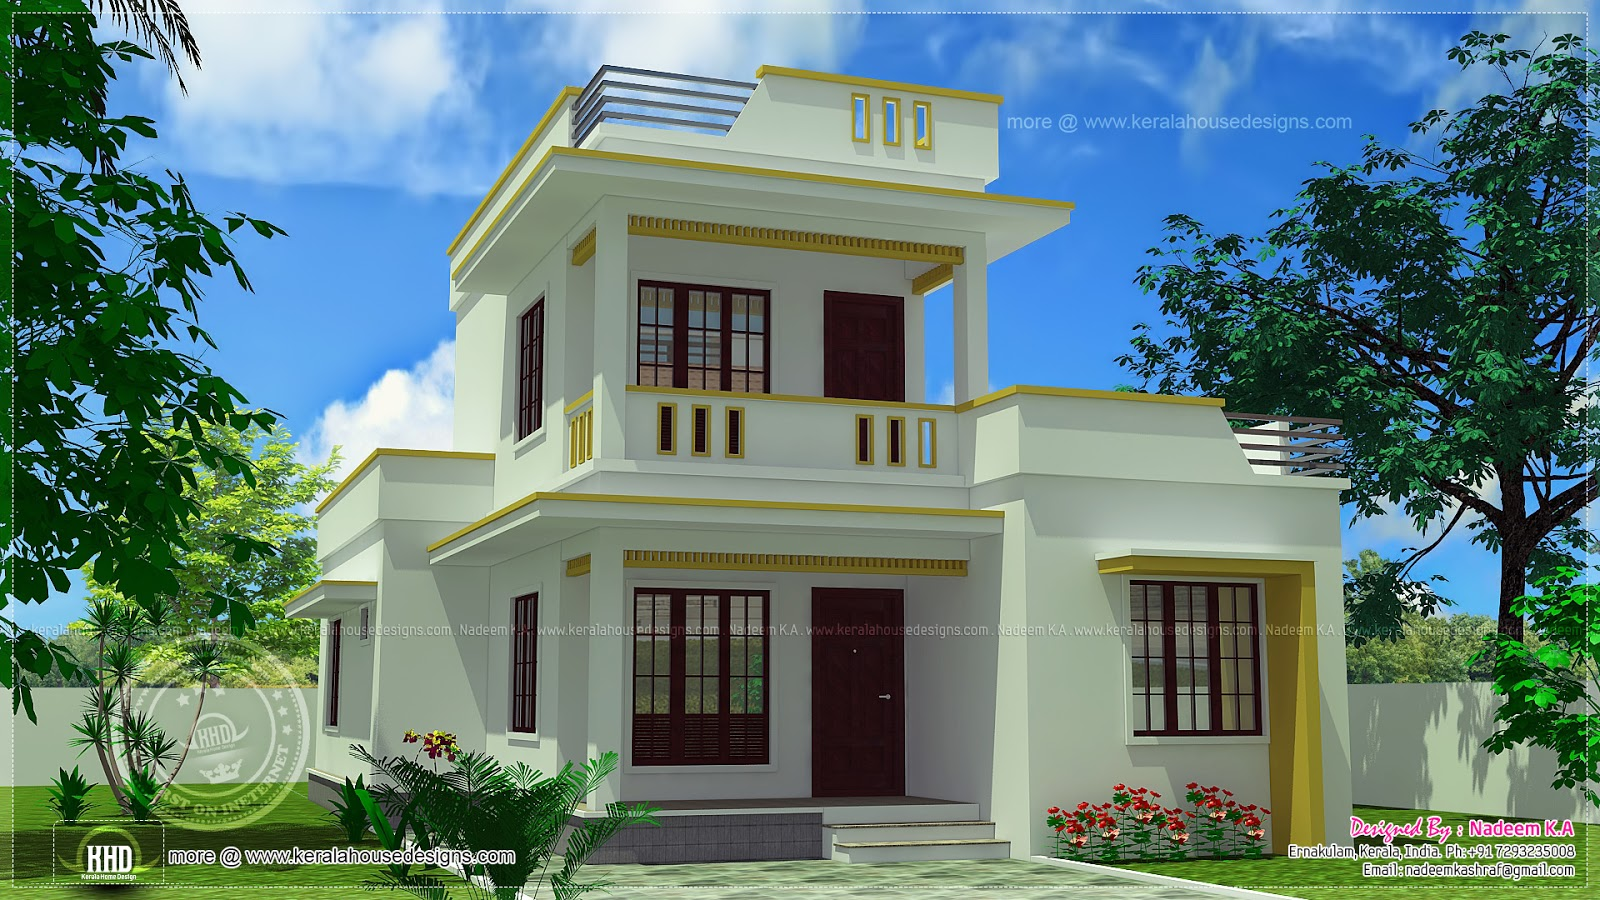 August 2013 kerala home design and floor plans for Houses and their plans